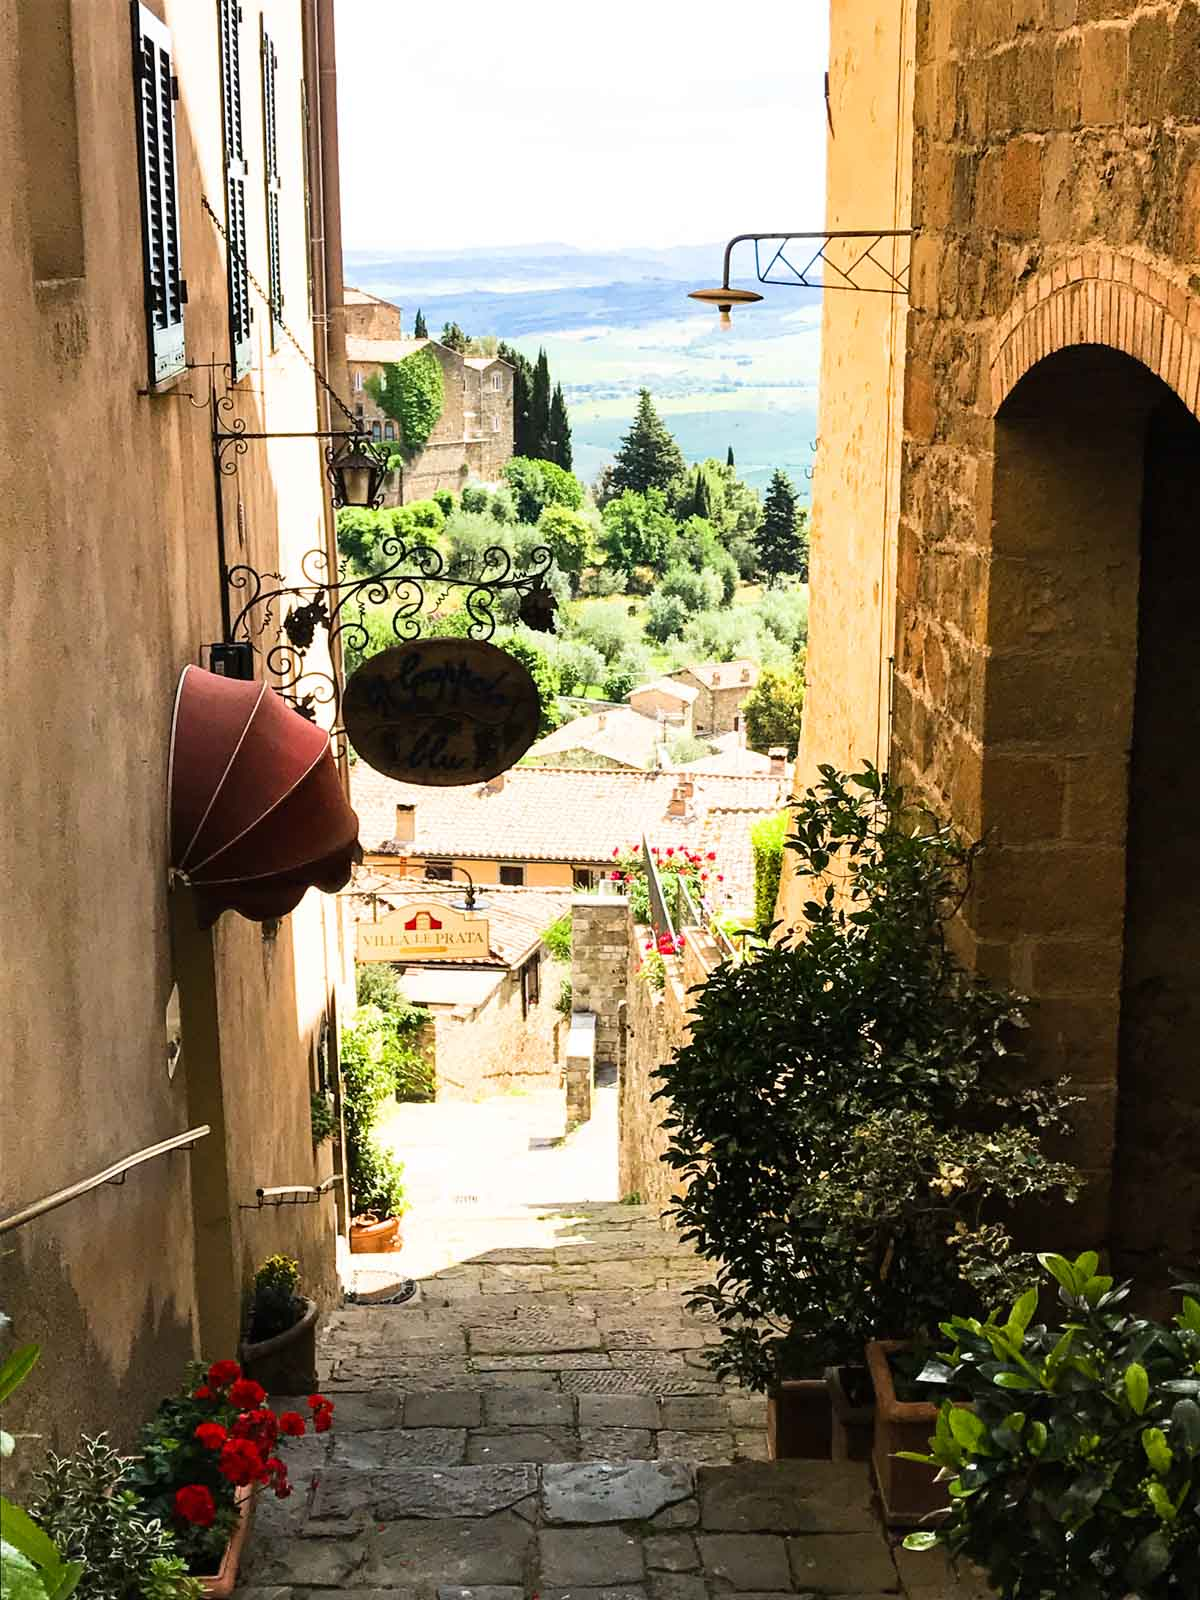 A photo journal from two of my favorite day trips from Florence, Italy - the quaint and adorable villages of Pienza, Montalcino, and Masa Maritima.